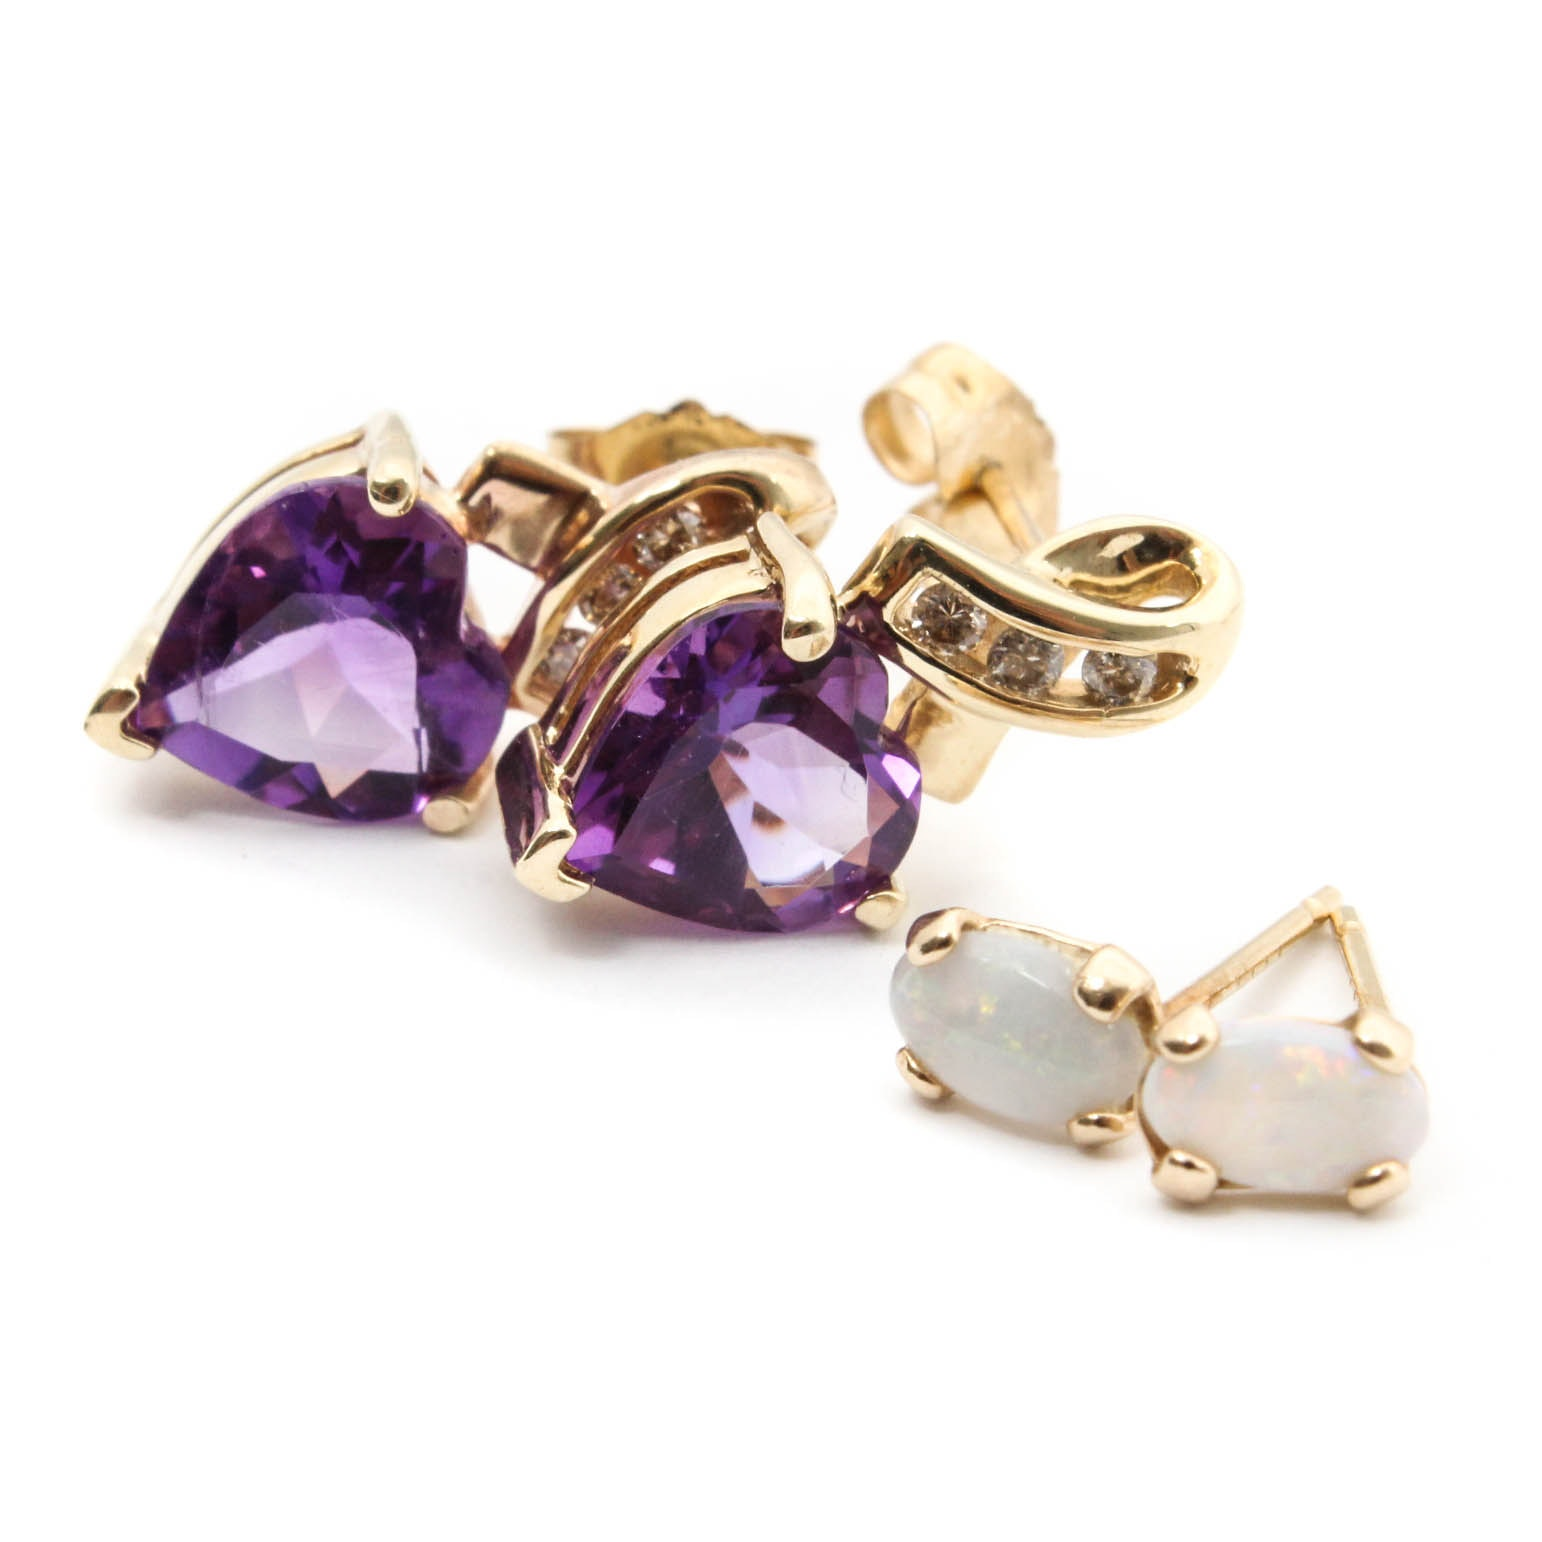 14K Yellow Gold Opal Earrings and 10K Yellow Gold Amethyst and Diamond Earrings